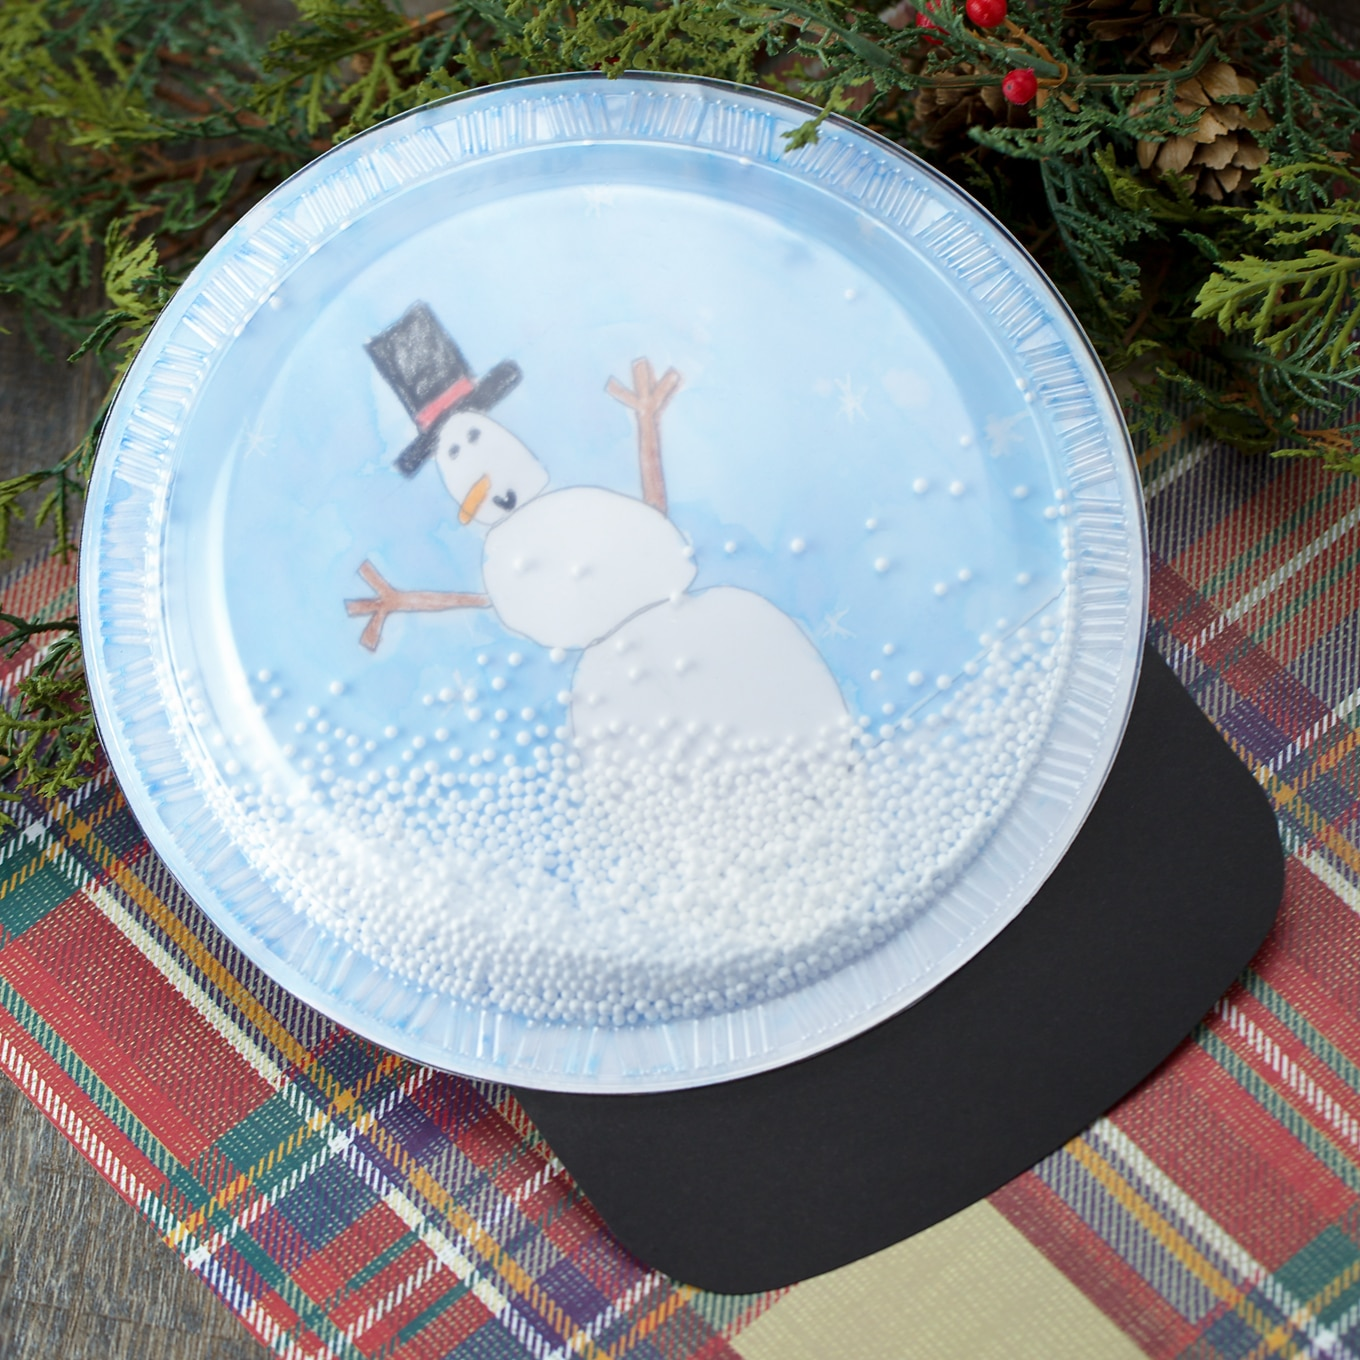 Easy and Fun DIY Plastic Plate Snow Globe Craft for Kids